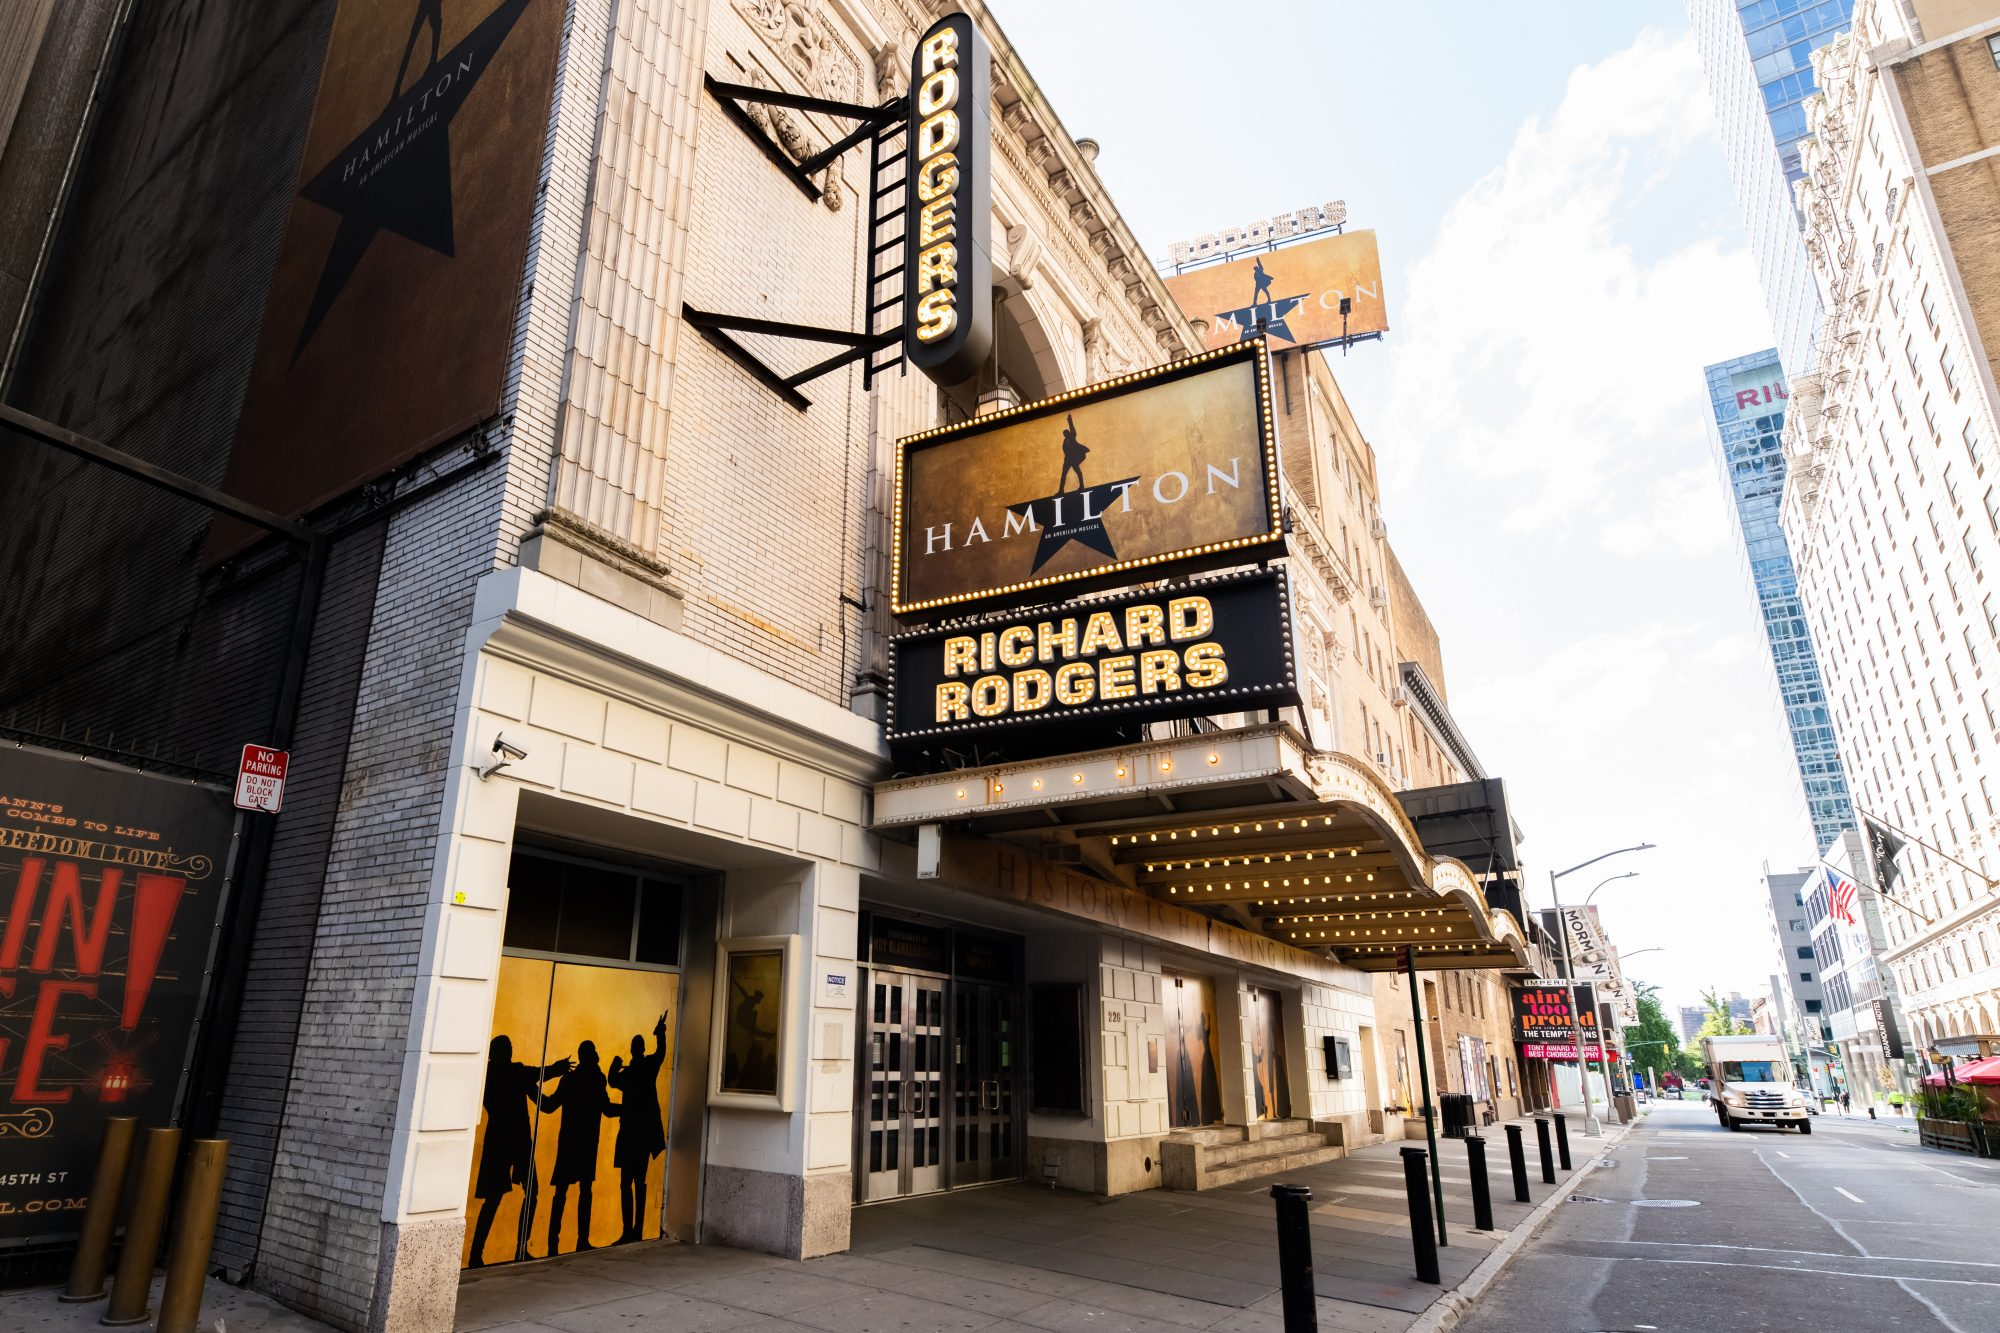 Marquee at Hamilton: An American Musical at the Richard Rodgers Theatre in Times Square